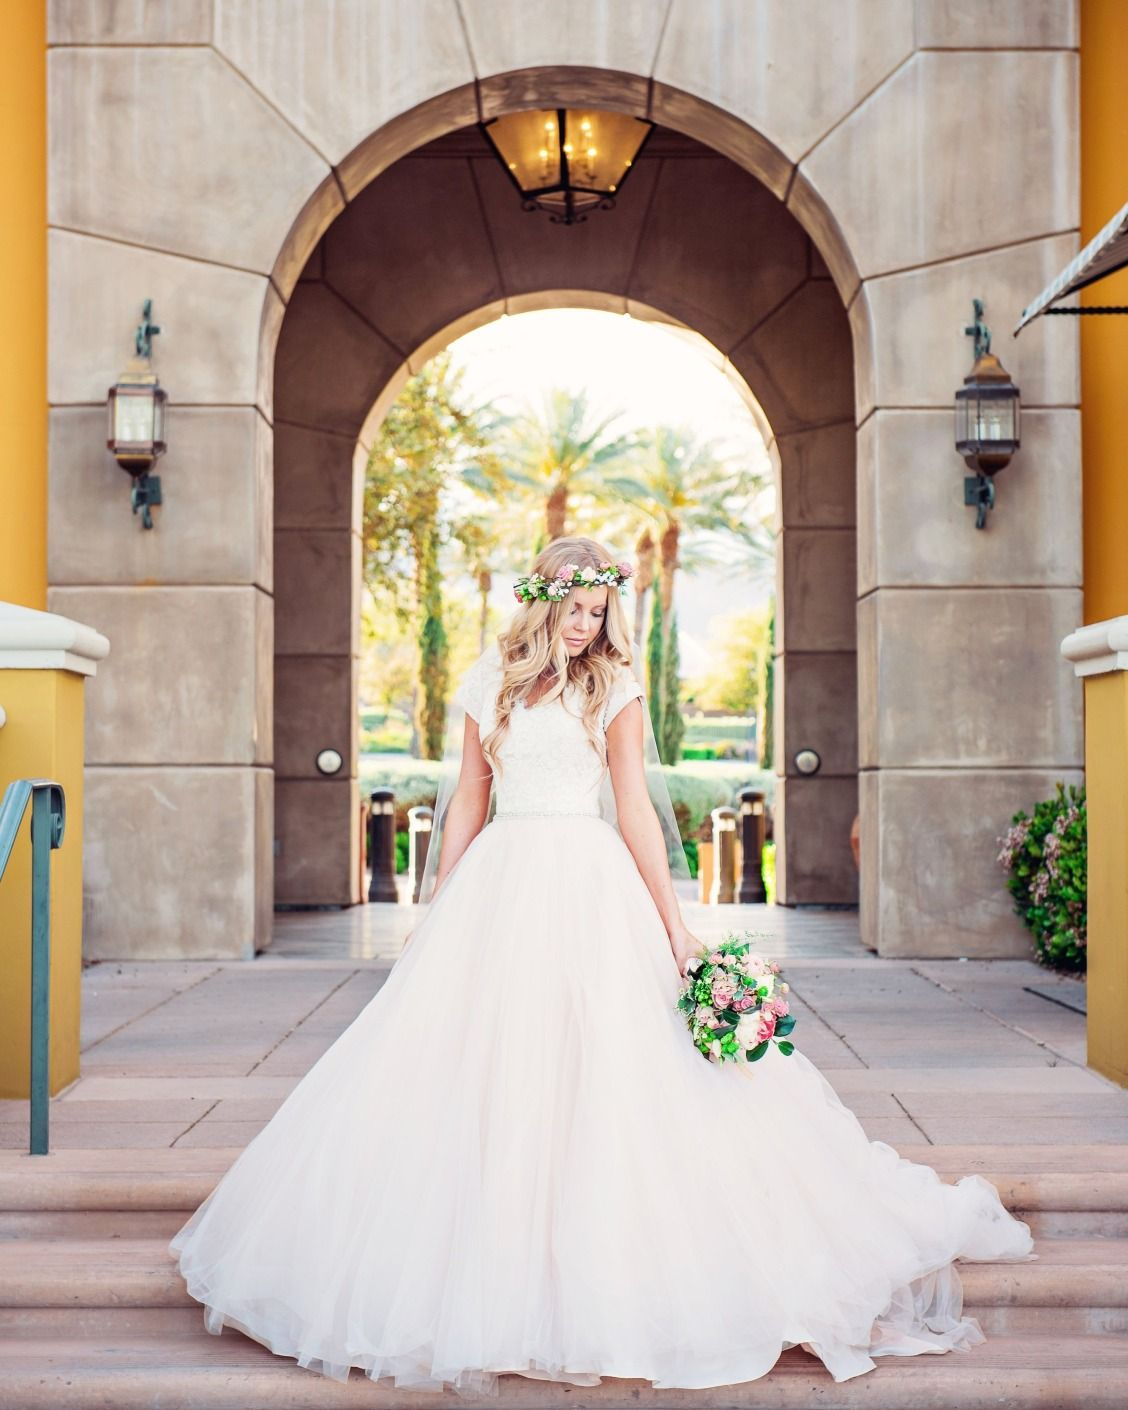 Did you know we have a modest bridal collection as seen on this